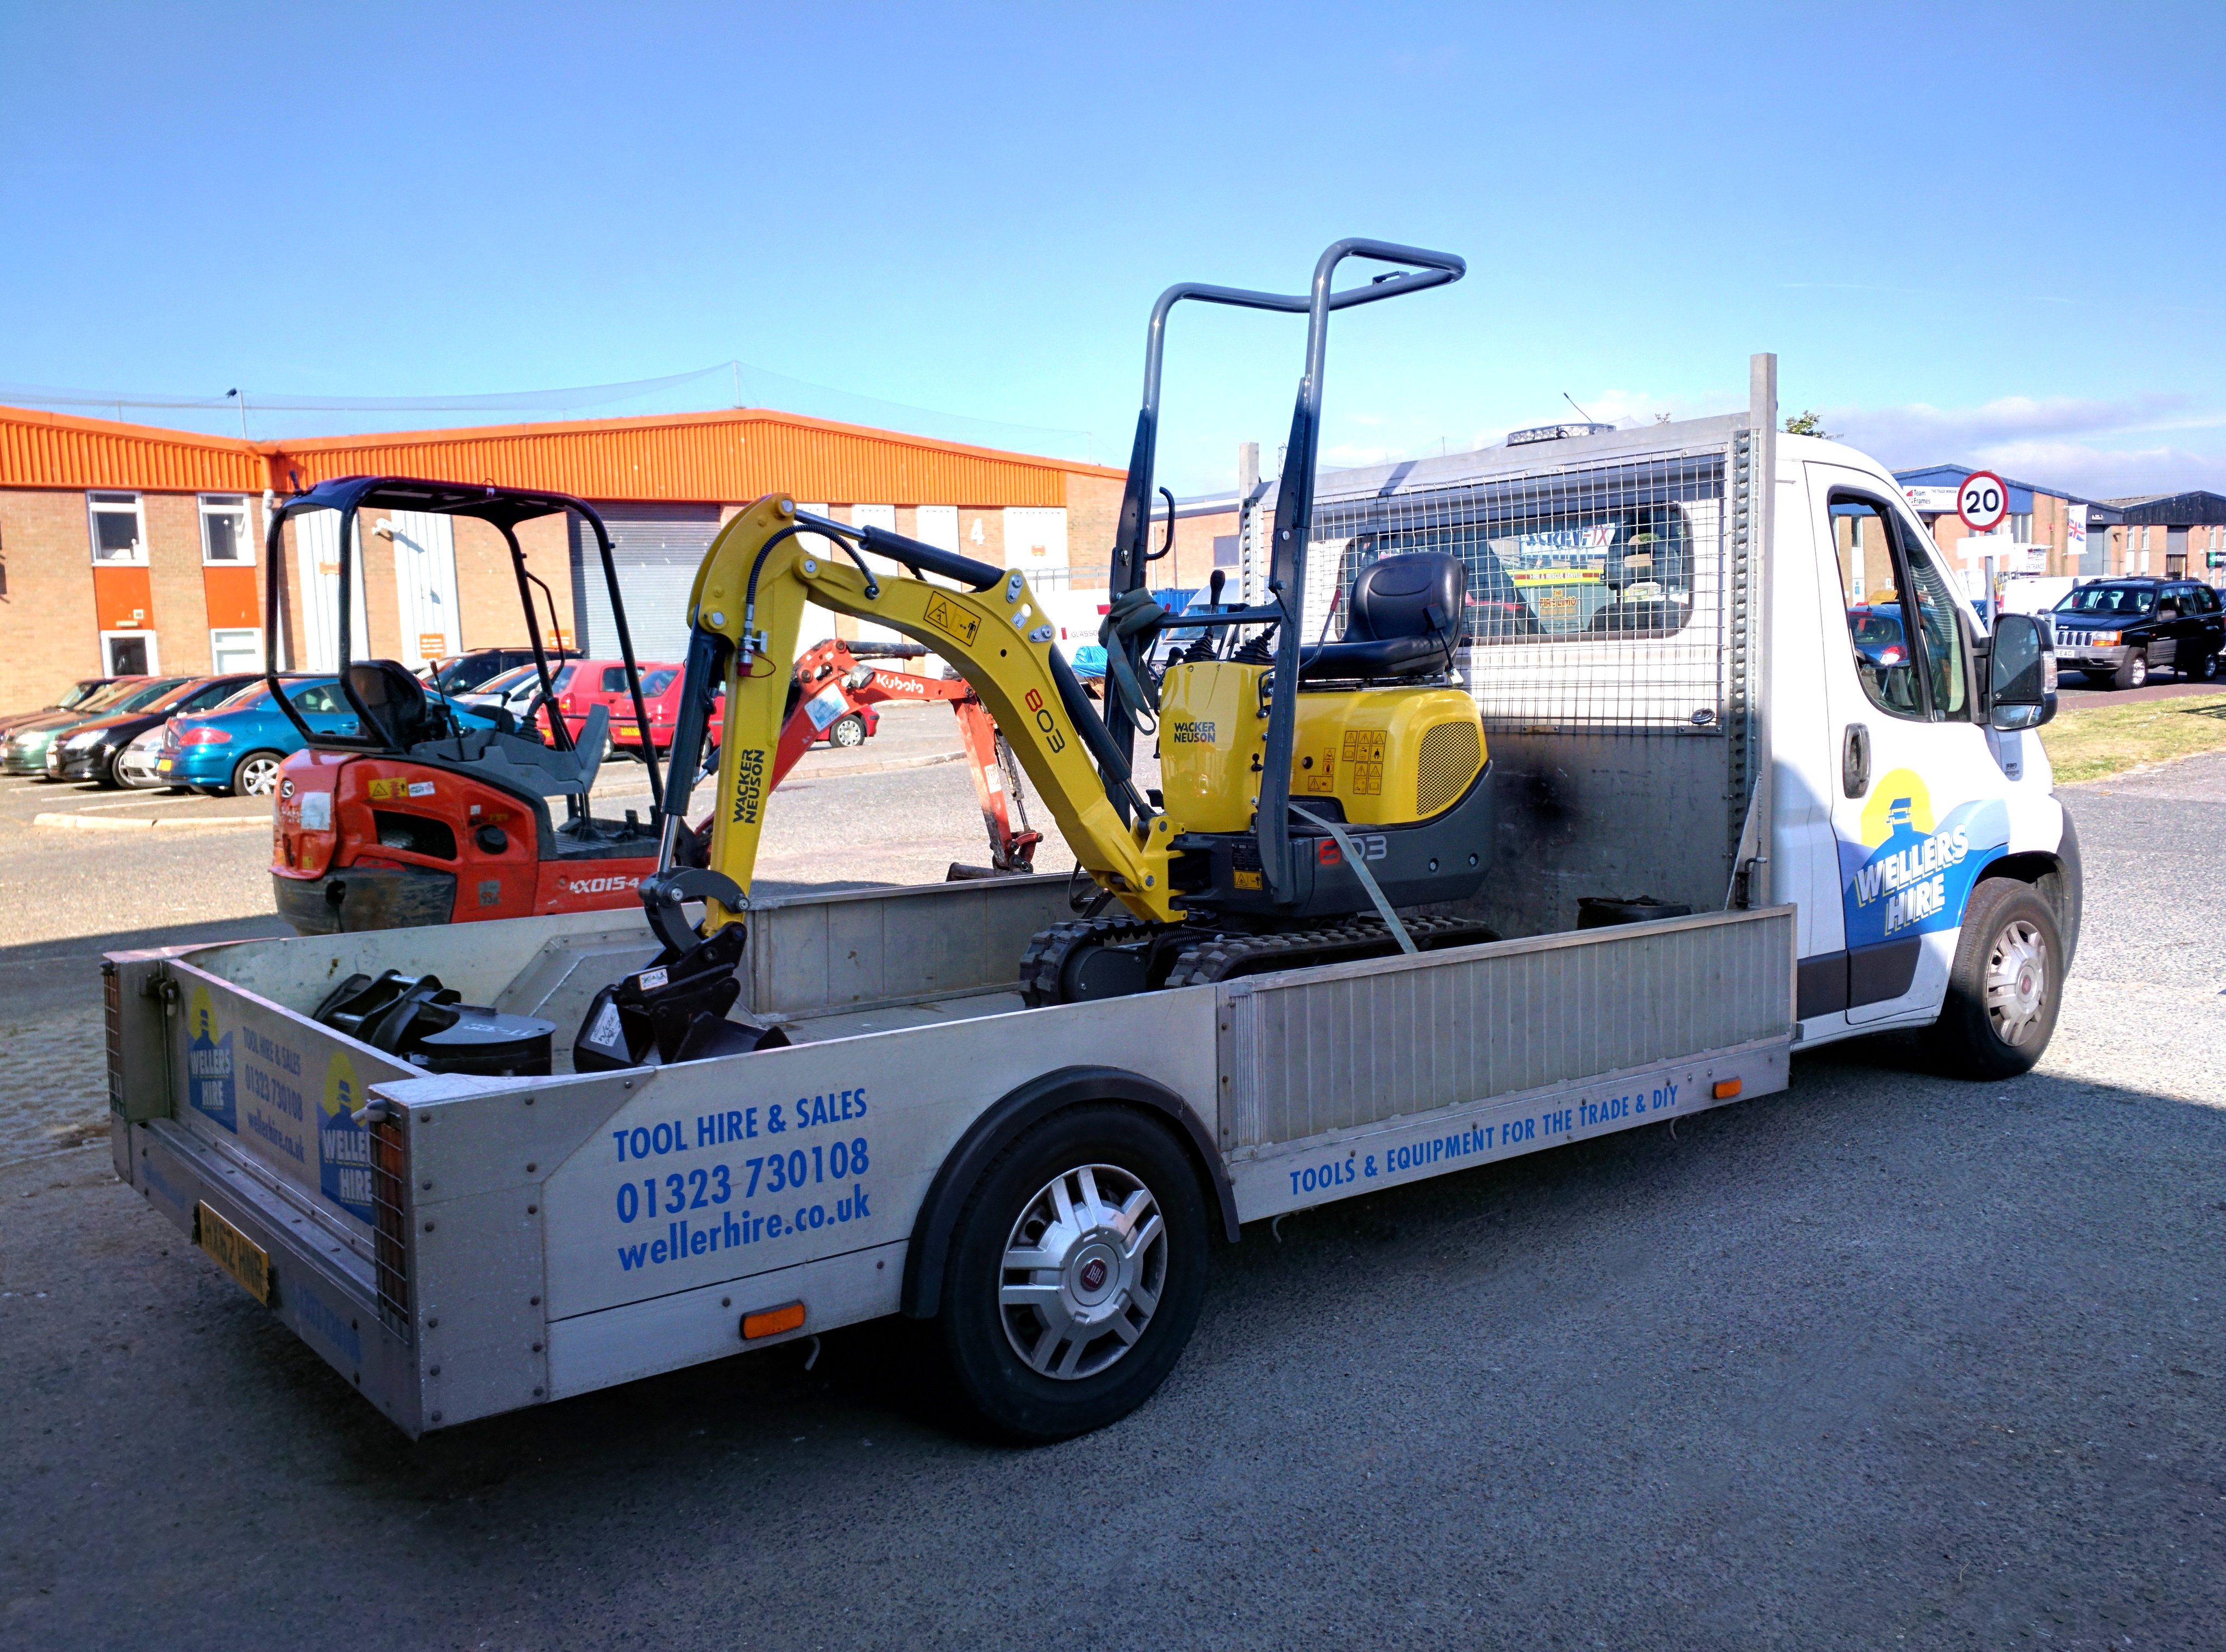 Wellers Hire Delivery Lorry with Mini Excavator